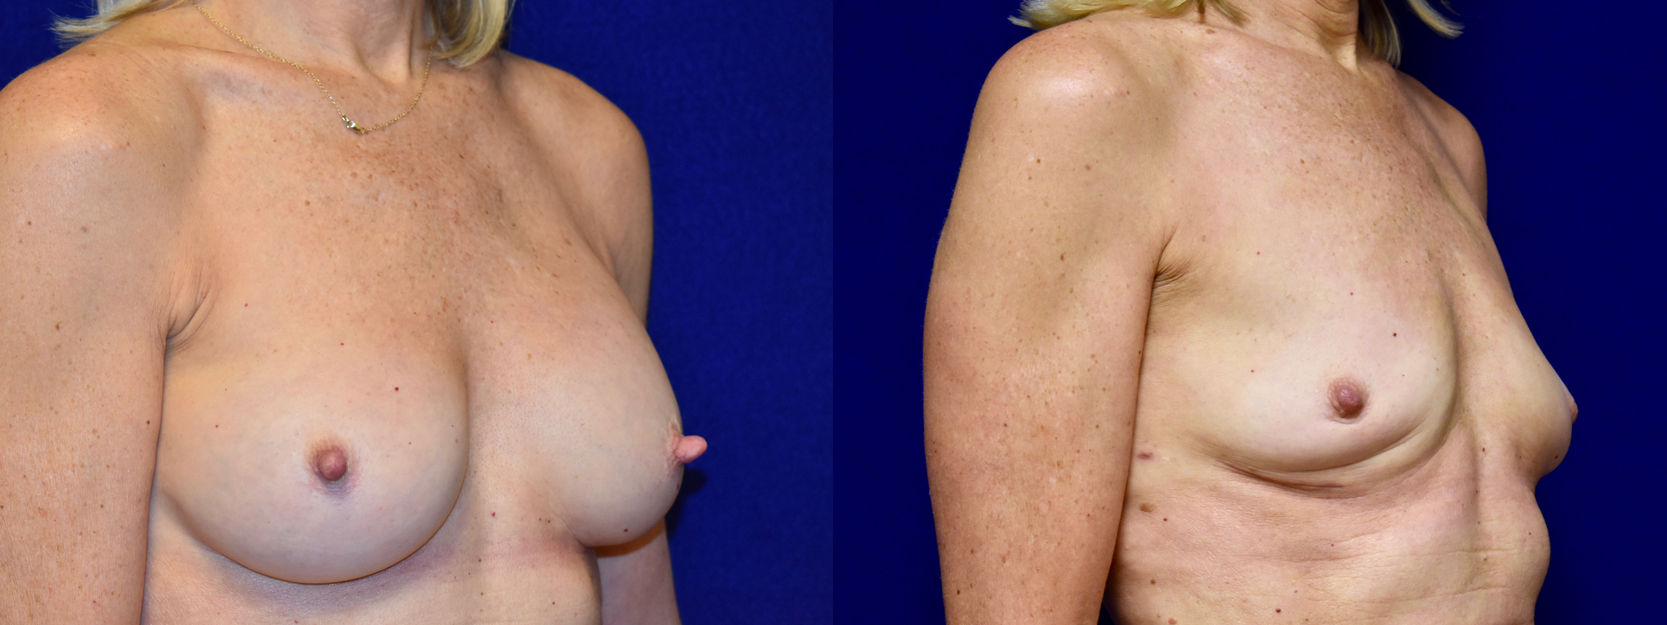 Right 3/4 View - Breast Implant Removal